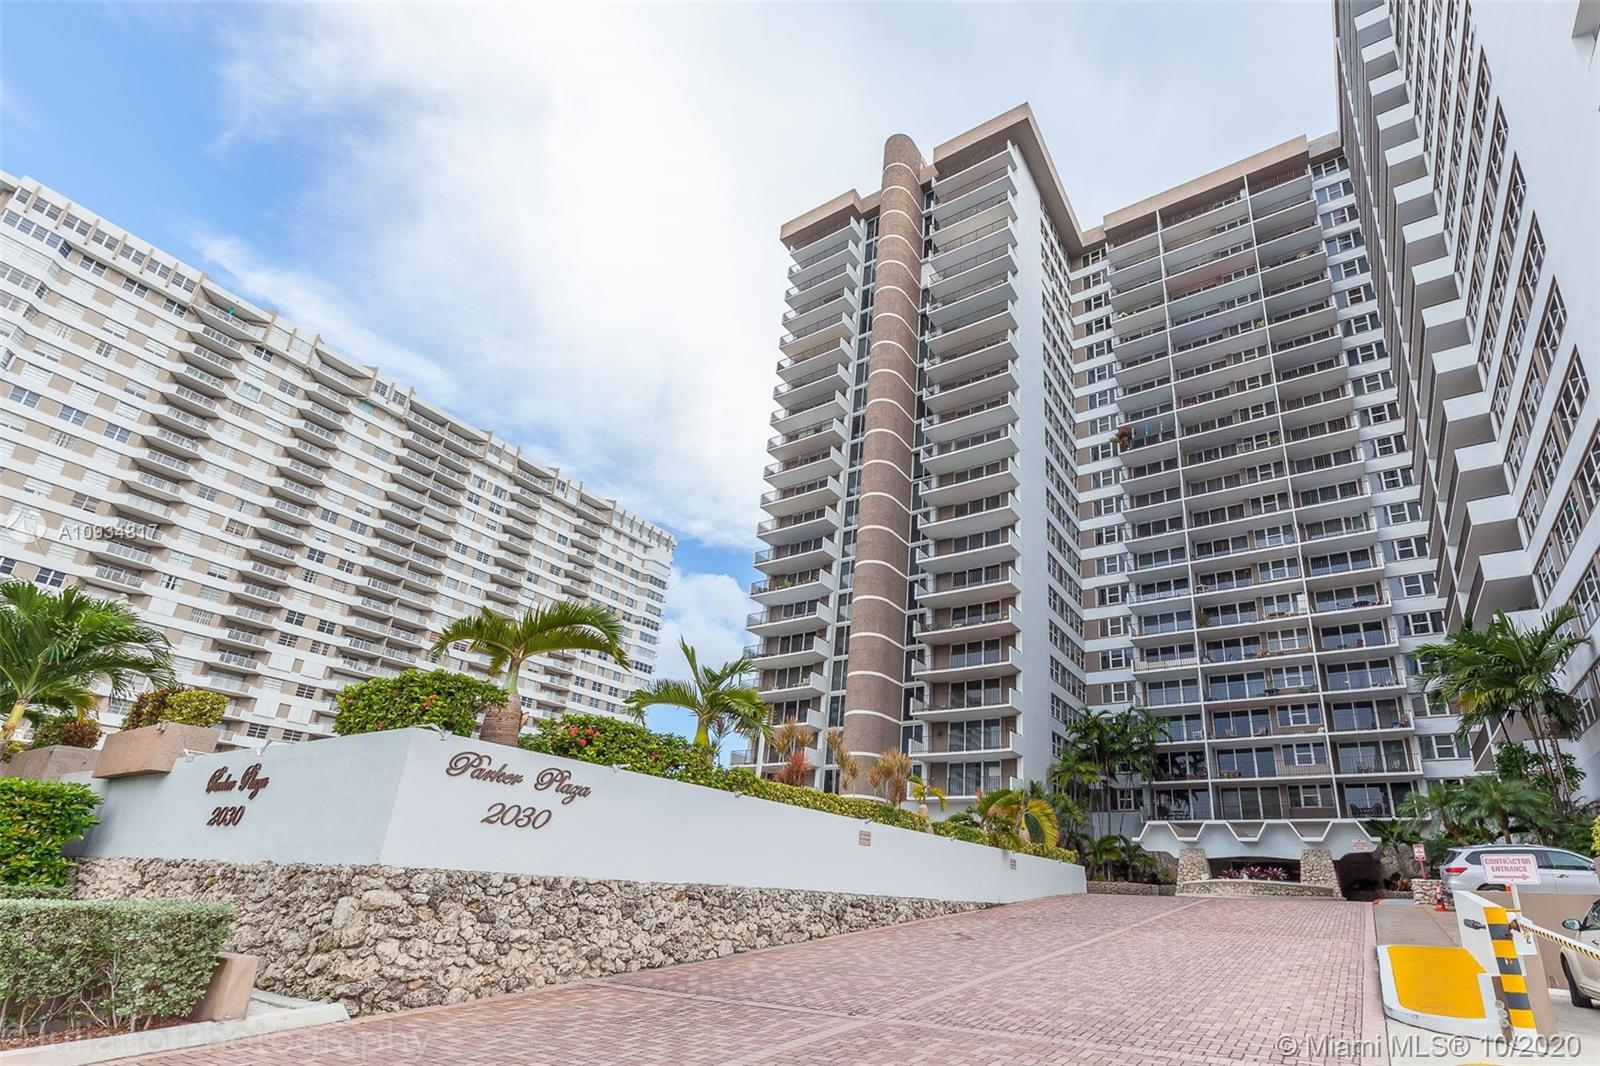 LOCATED IN A DIRECT OCEAN FRONT BUILDING, WALK OUT THE DOOR AND ONTO THE SAND. UNIT HAS AN INTRACOAS